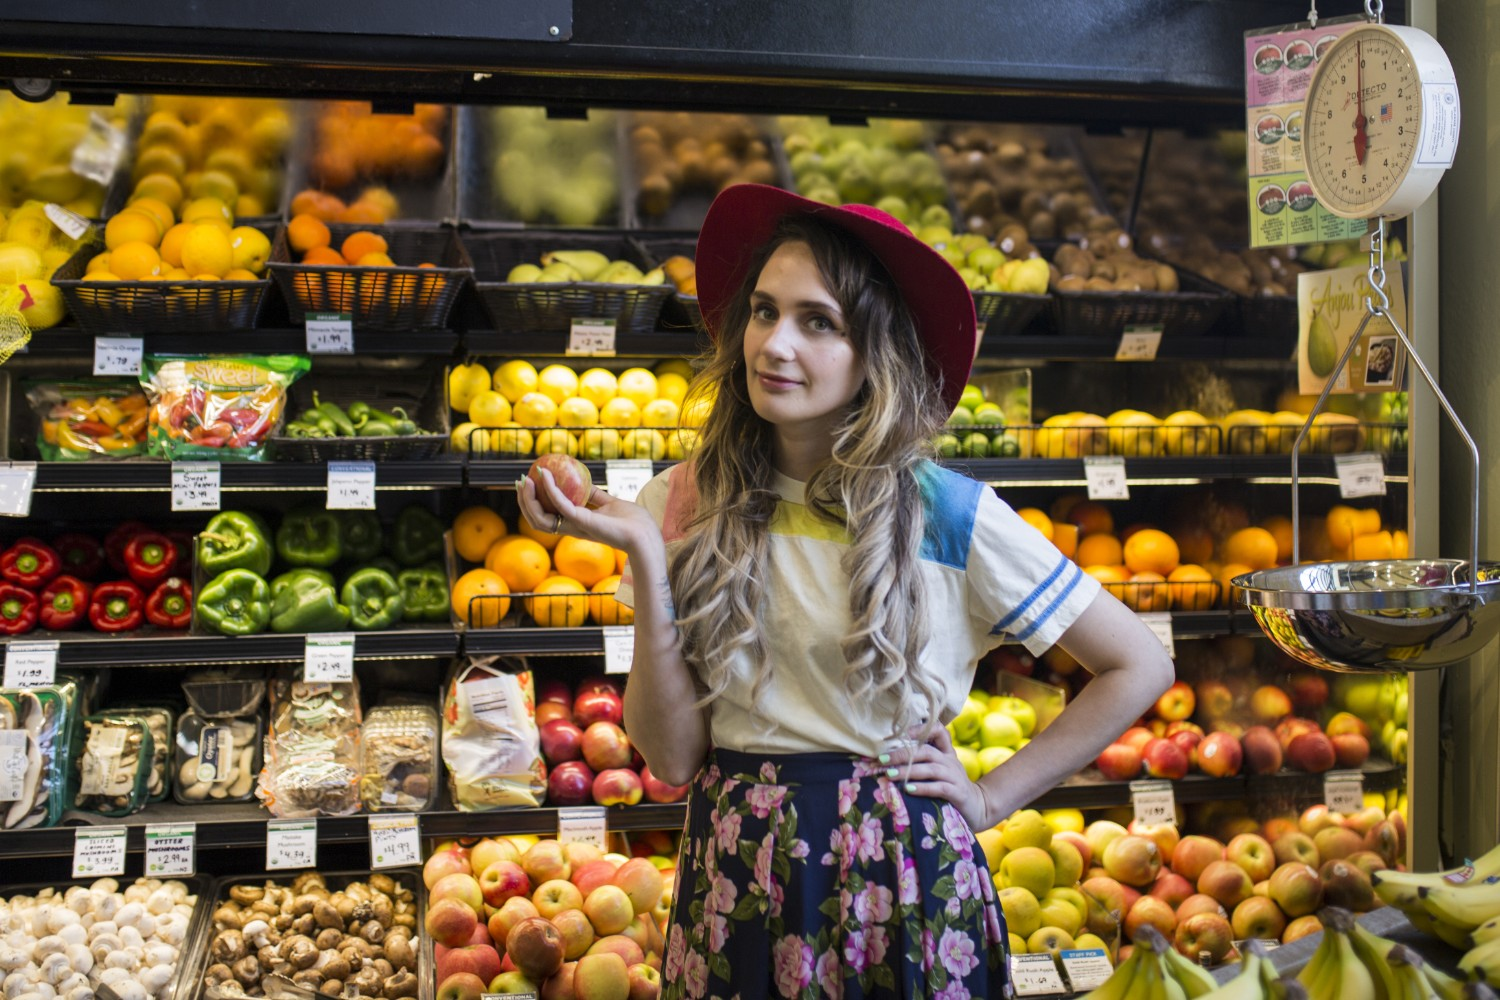 Sadie Dupuis And The Return Of Speedy Ortiz